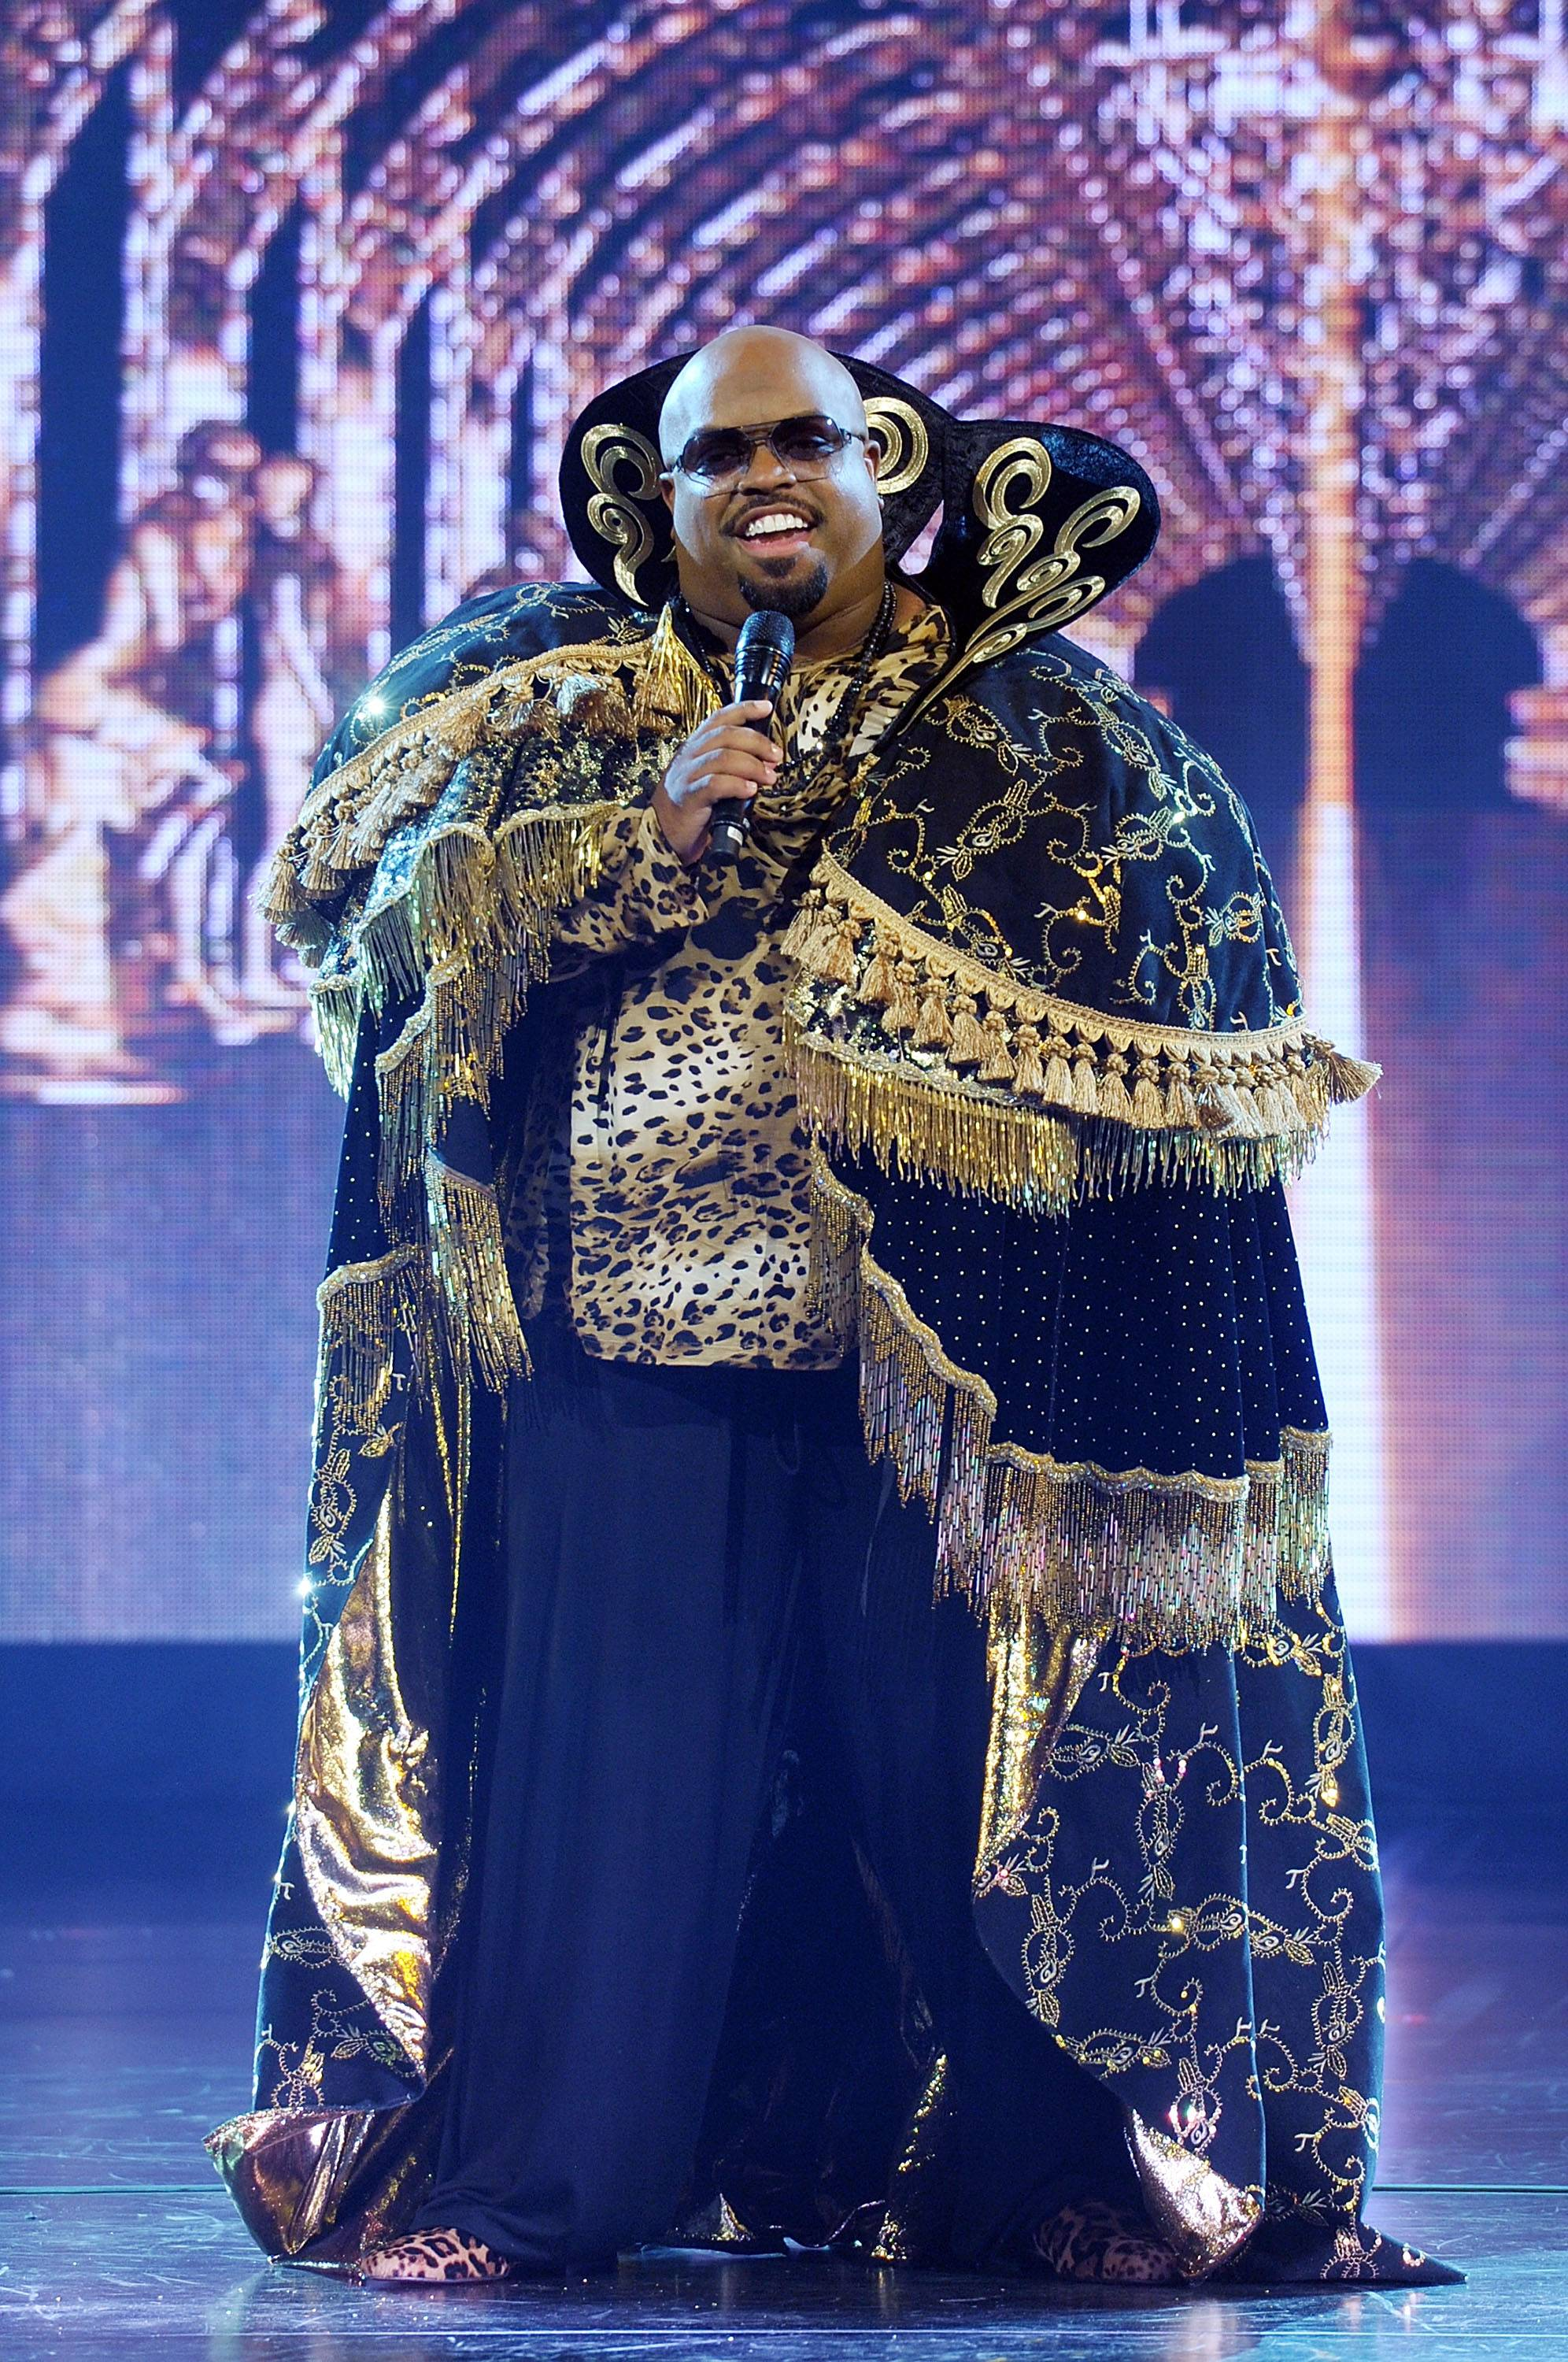 CeeLo Green Kicks Off His Las Vegas Residency With The Debut of